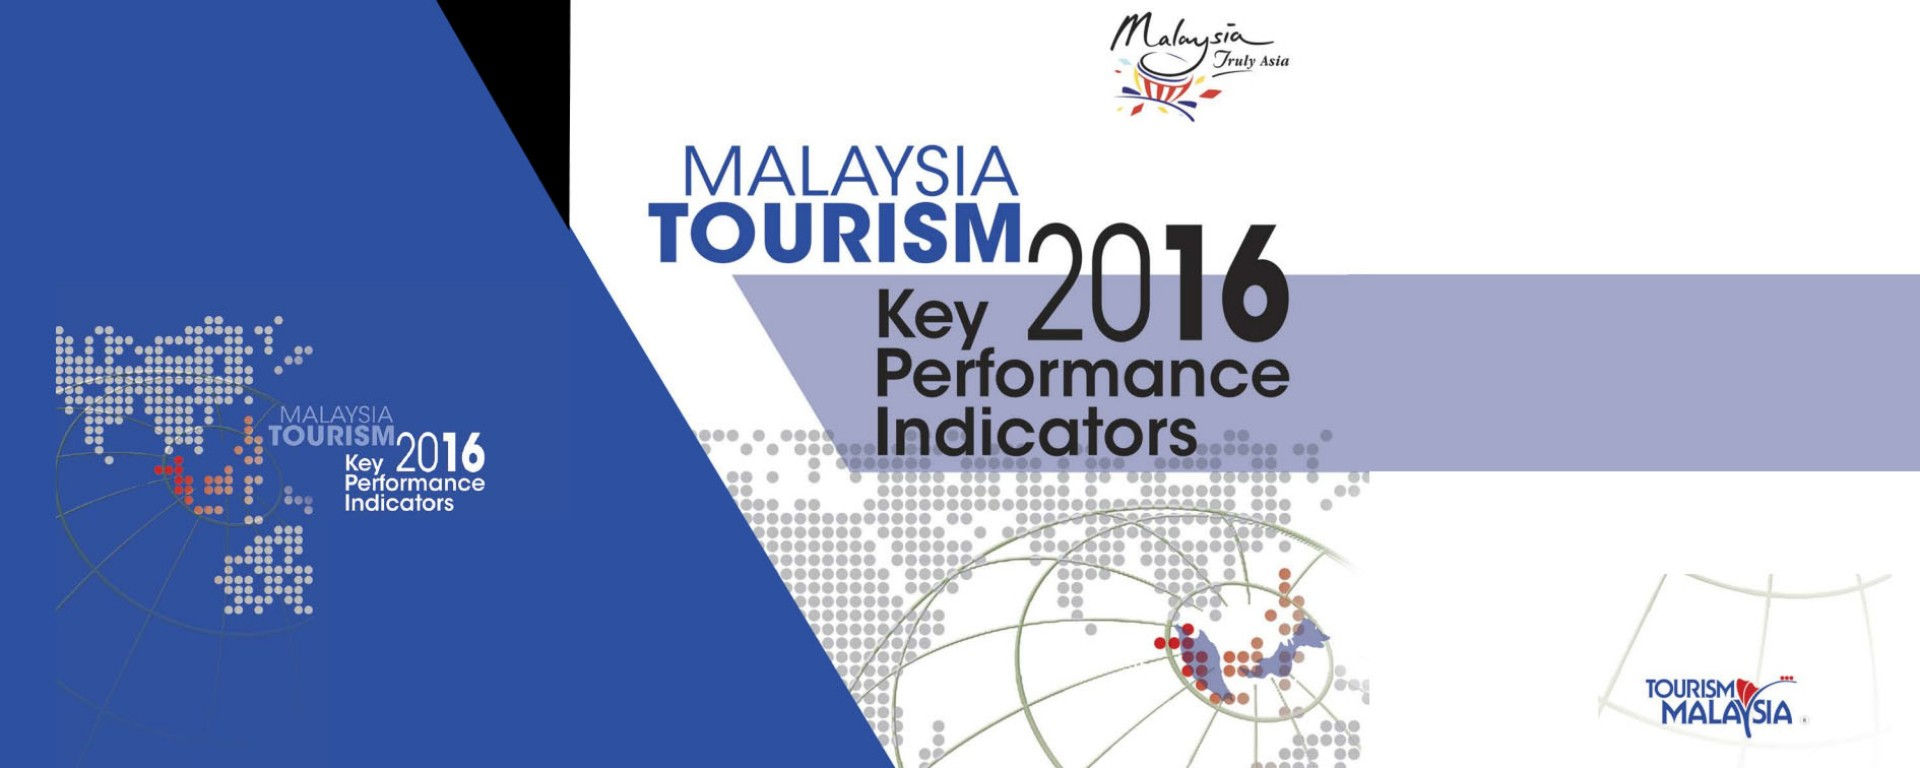 Key Performance Indicators 2016 <div class='action'><a href='http://www.tourism.gov.my/pdf/uploads/KEY-PERFORMANCE-INDICATORS-2016.pdf' class='btn btn-danger btn-lg' target='_blank'>Download Now</a></div>